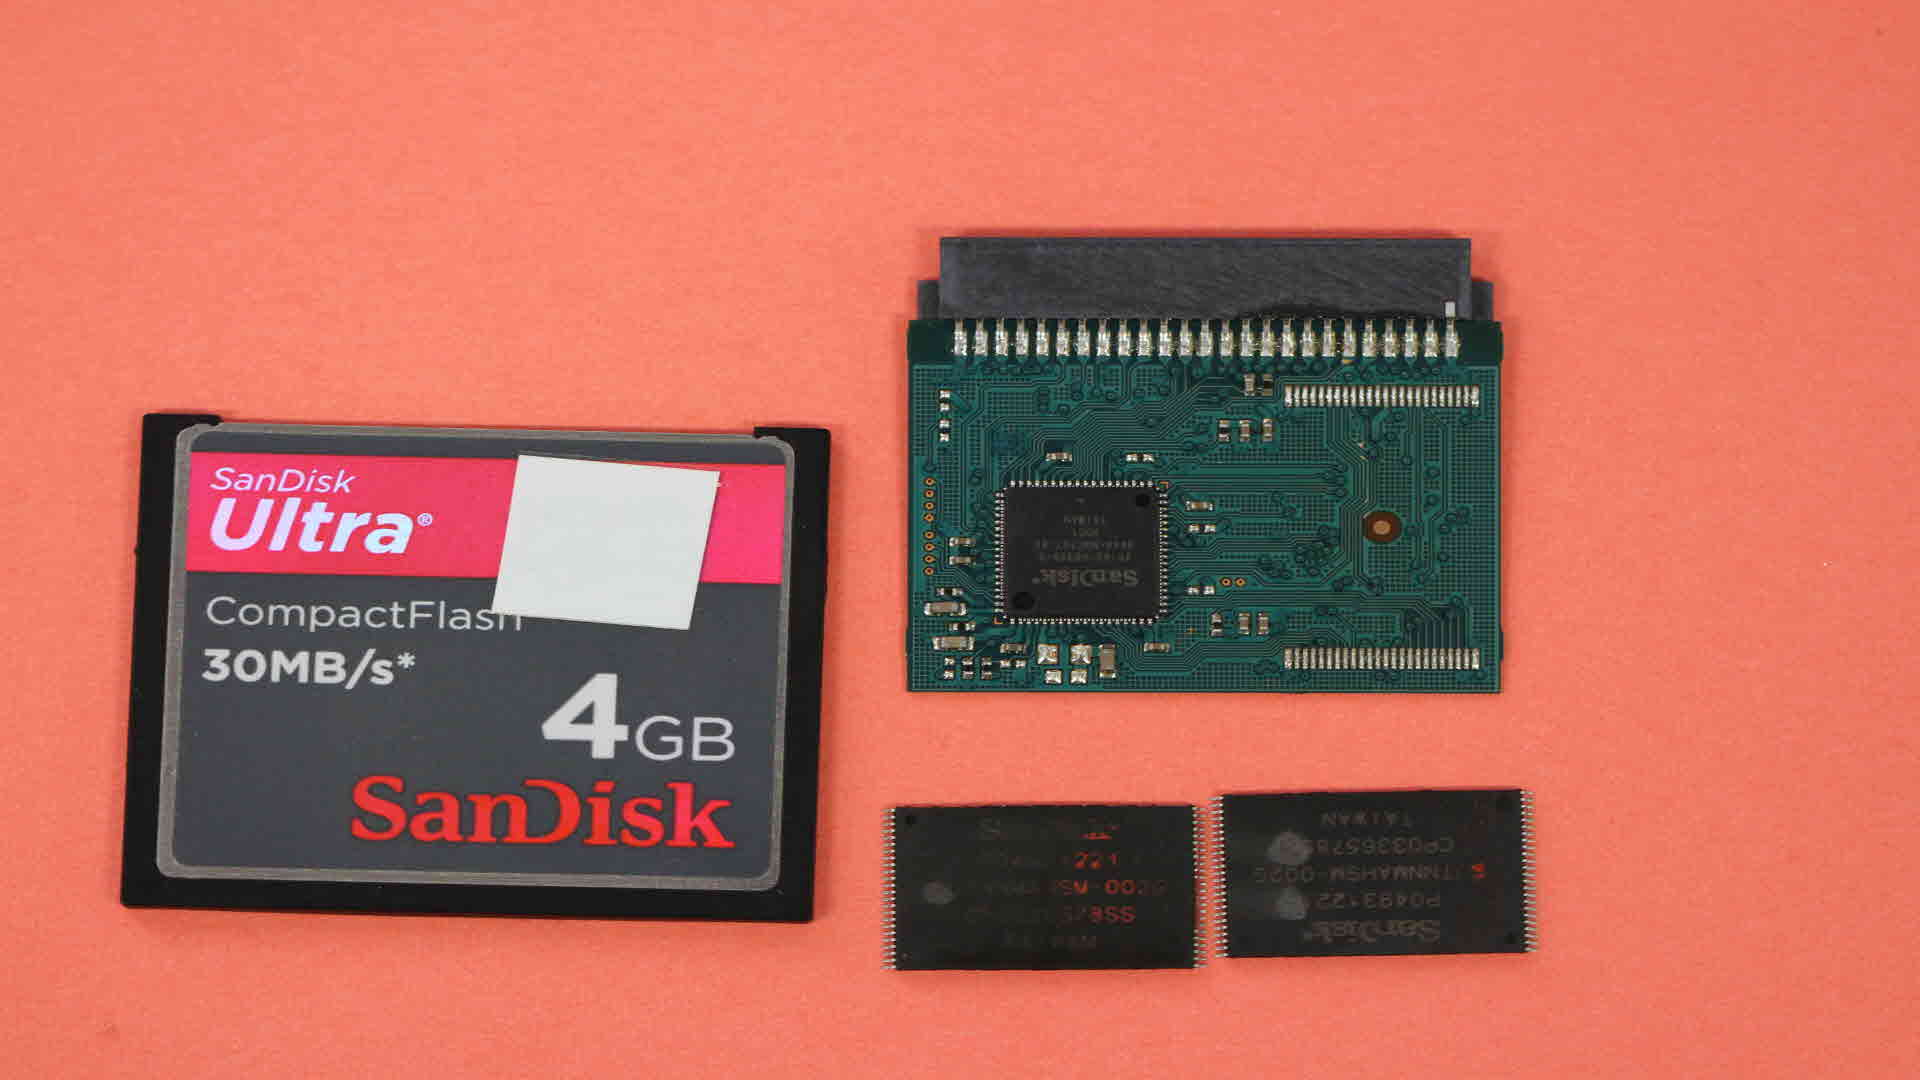 sandisk-ultra-30mb-recovery